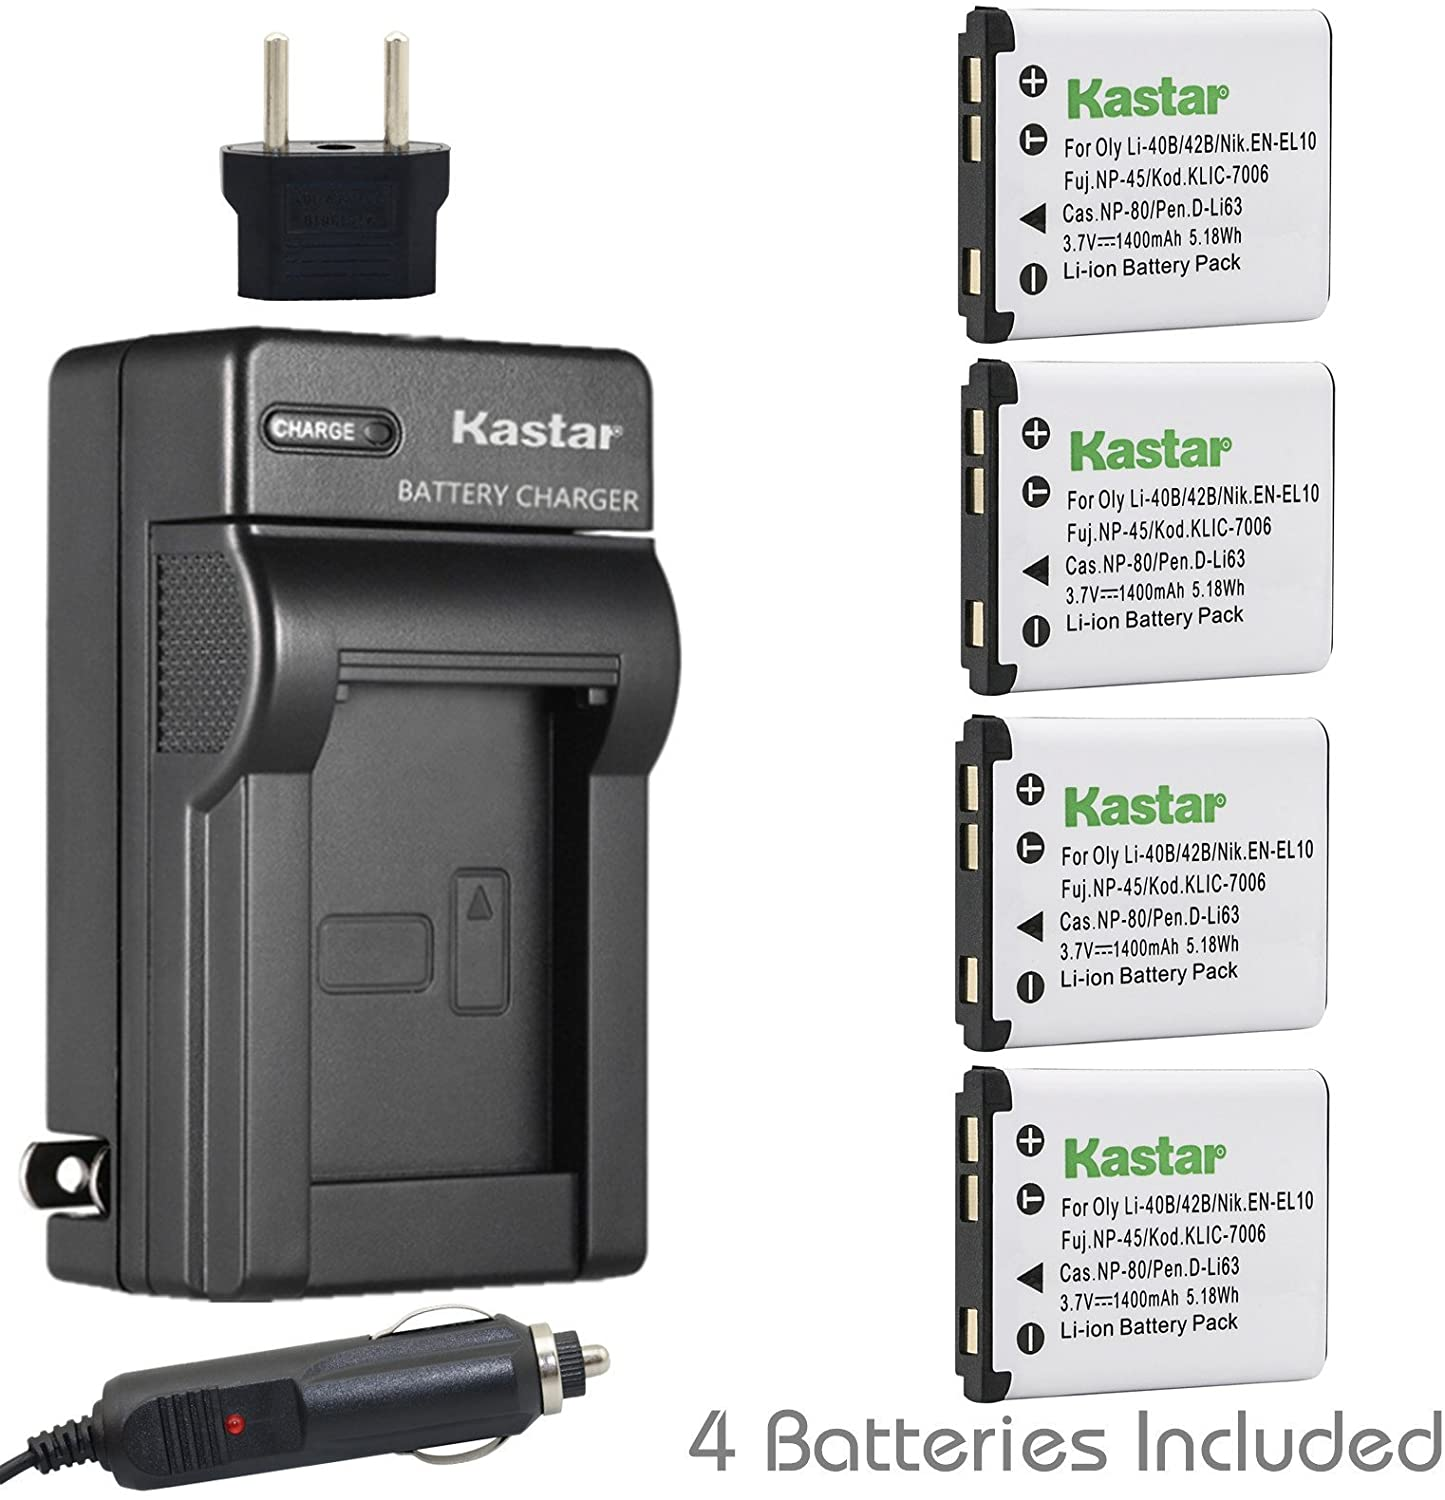 Kastar Battery 4x and Charger for Kodak KLIC-7006, Kodak EasyShare M22, M23, M200, M522, M530, M531, M532, M550, M552, M575, M577, M580, M583, M750, M873, M883, M5350, M5370, MD30, Mini, Touch Digital